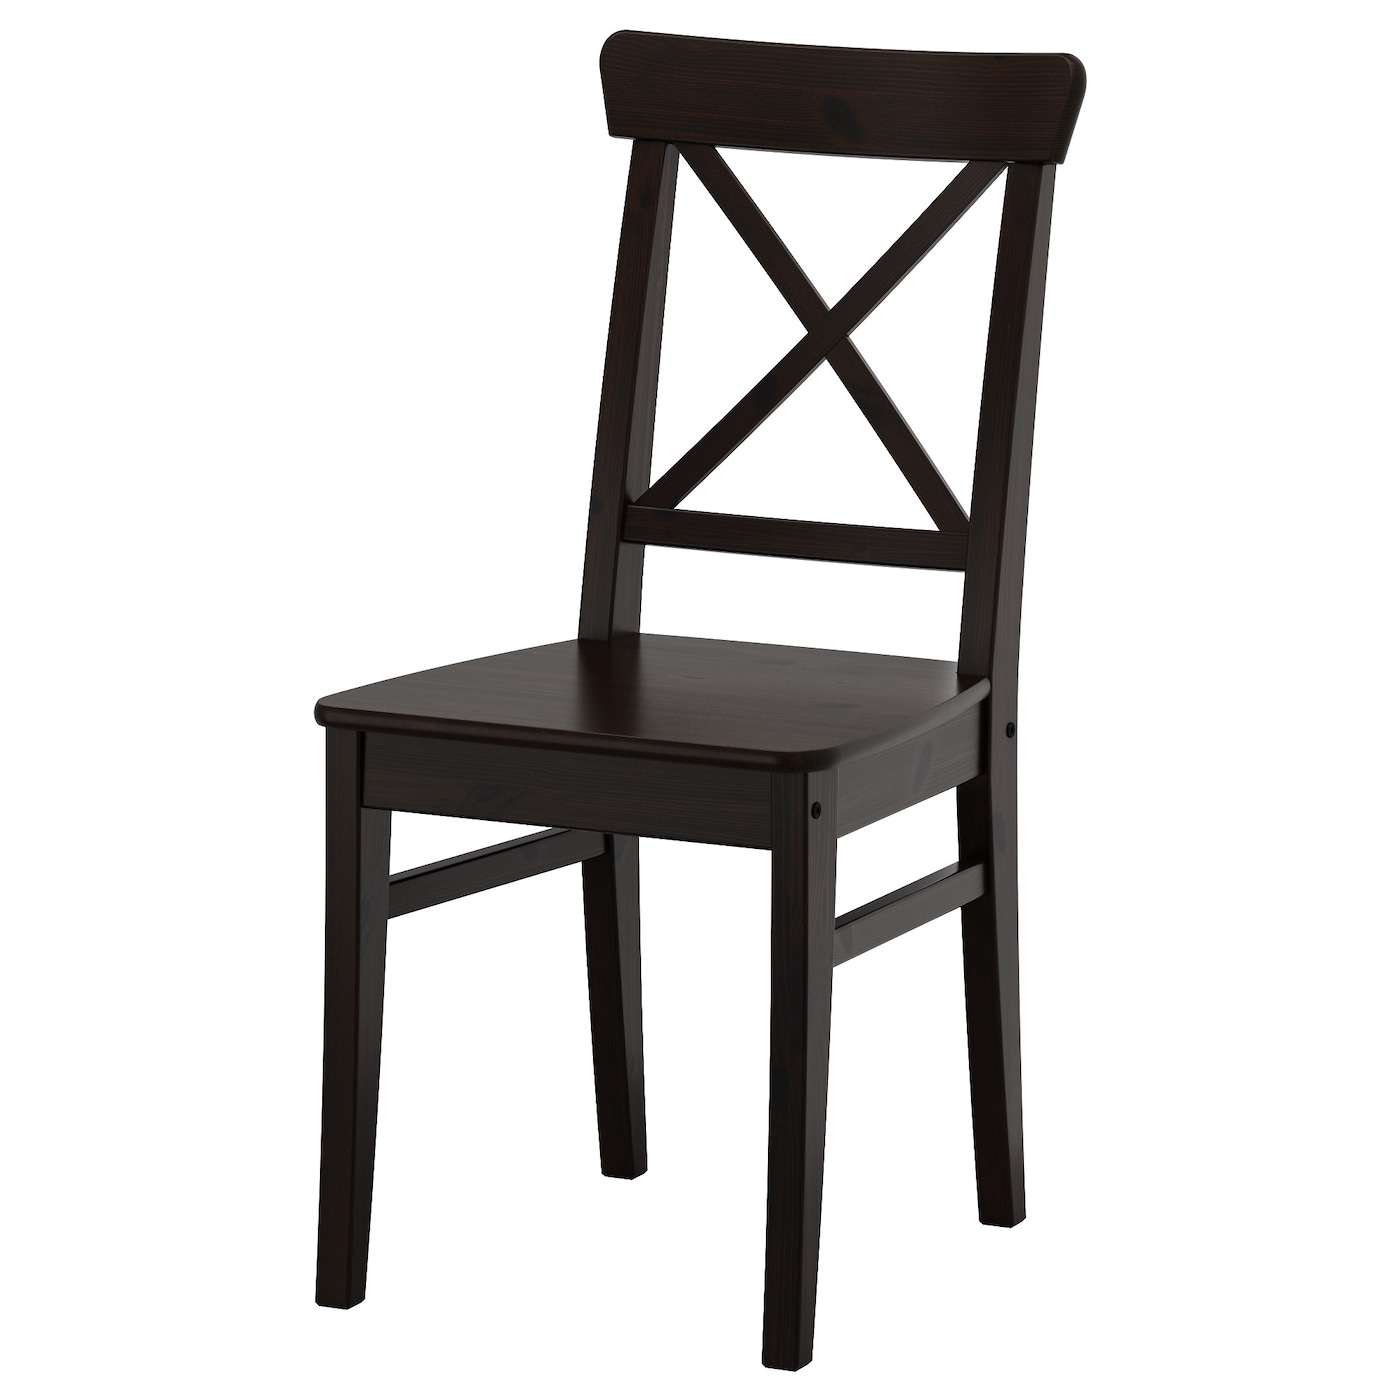 Ingolf chair brown black ikea for High table and chairs ikea